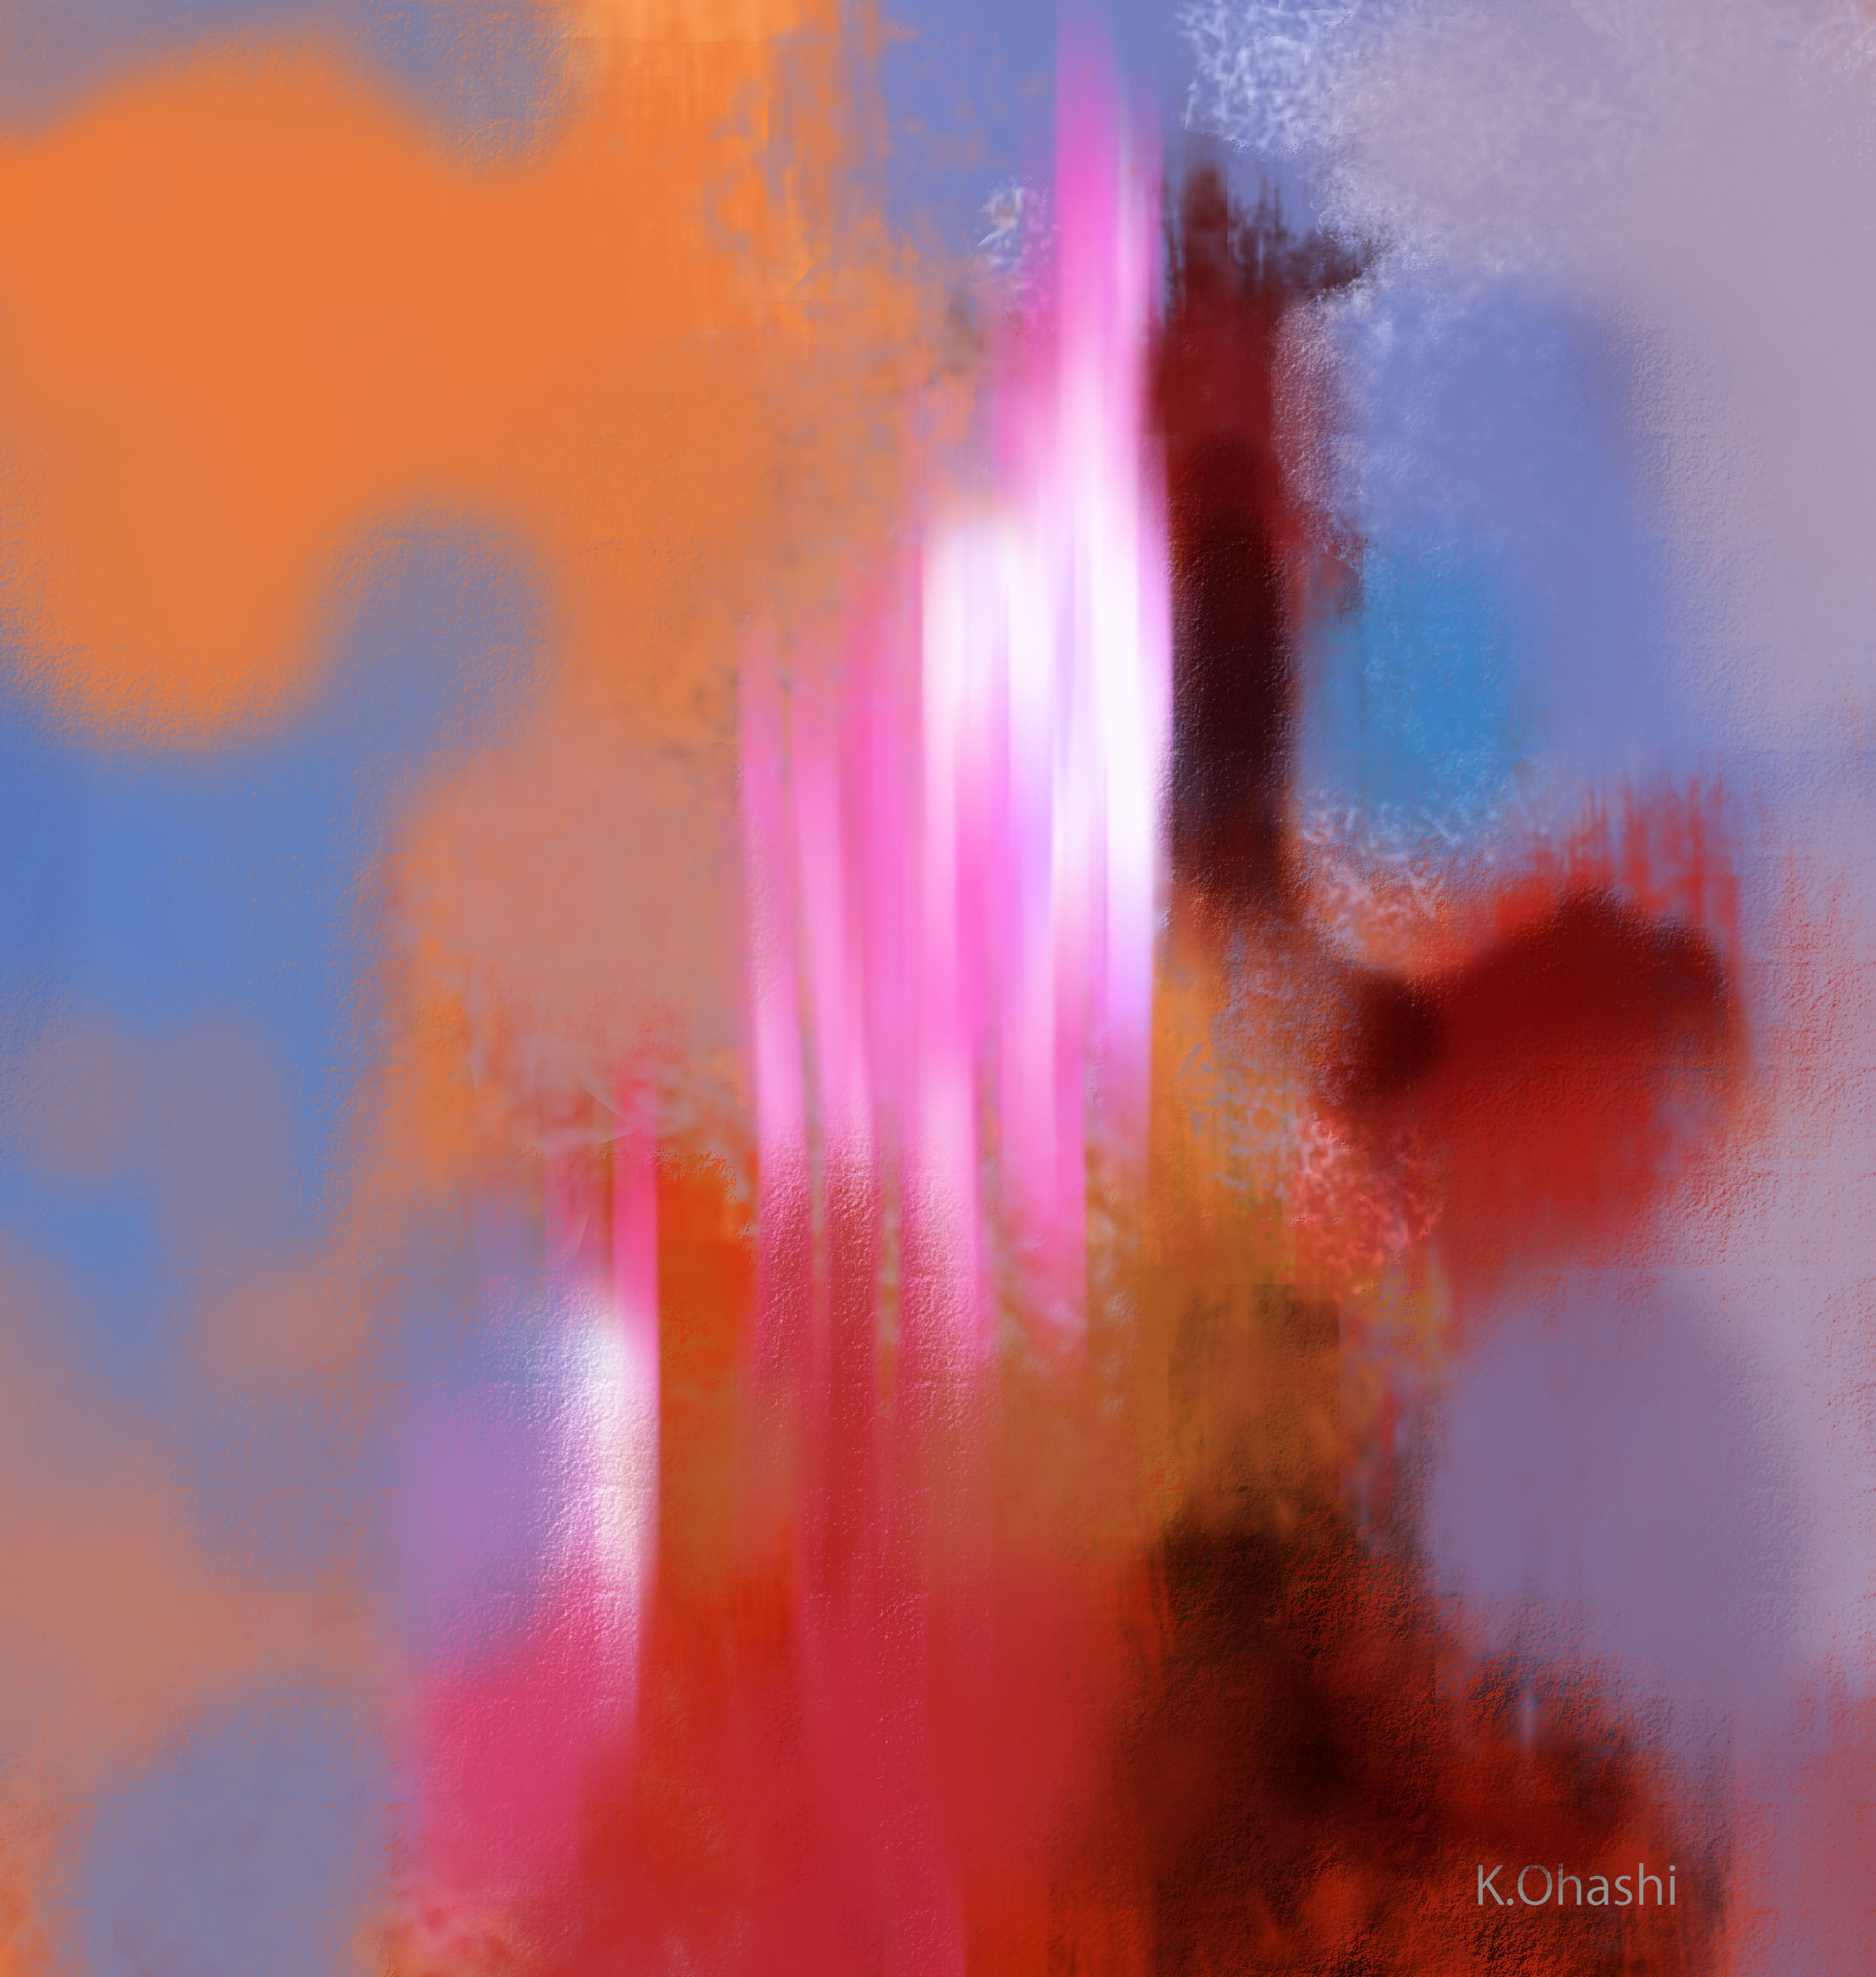 Abstraction201506271700